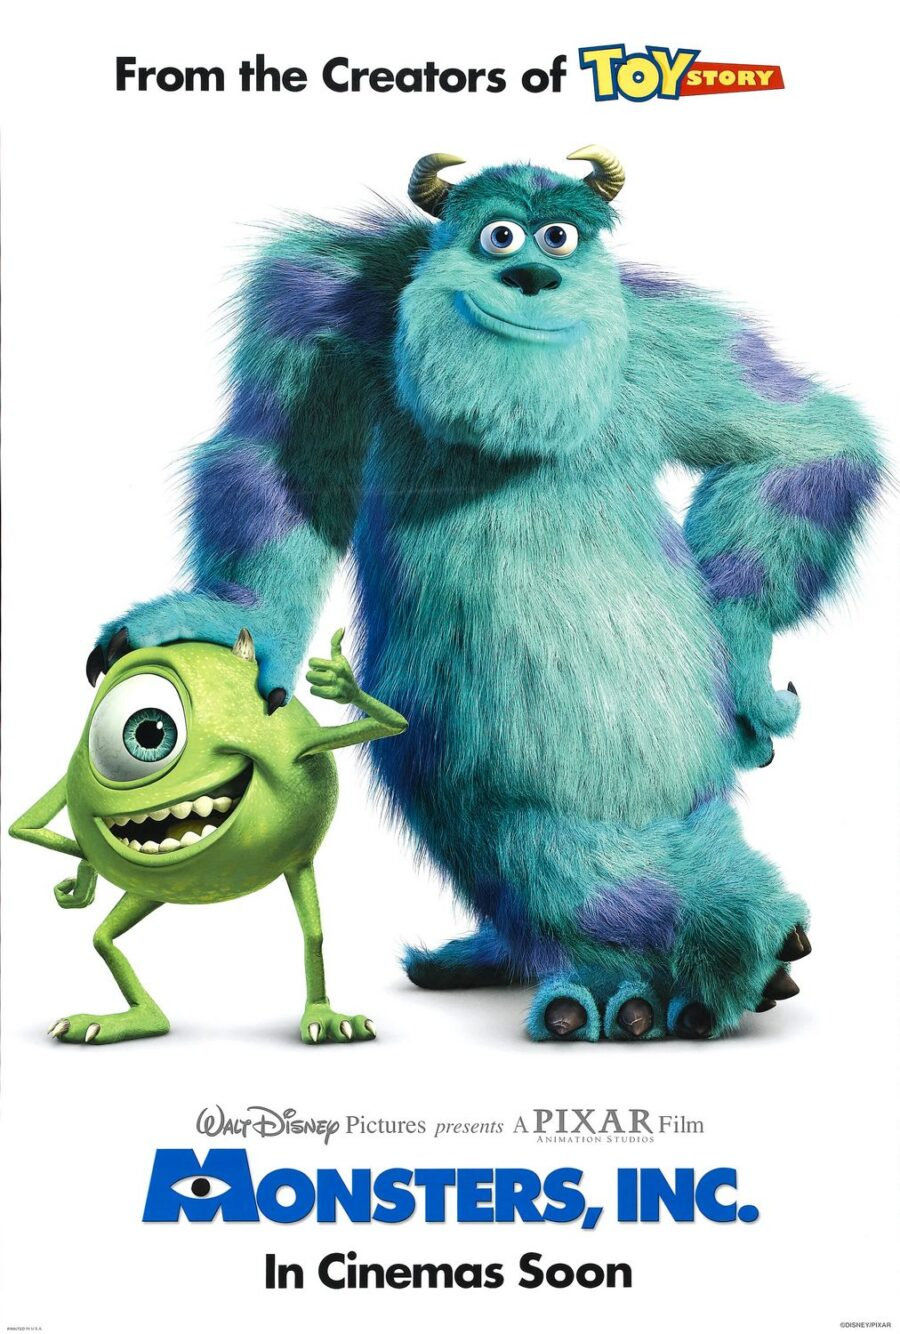 Pixar's best monster movie